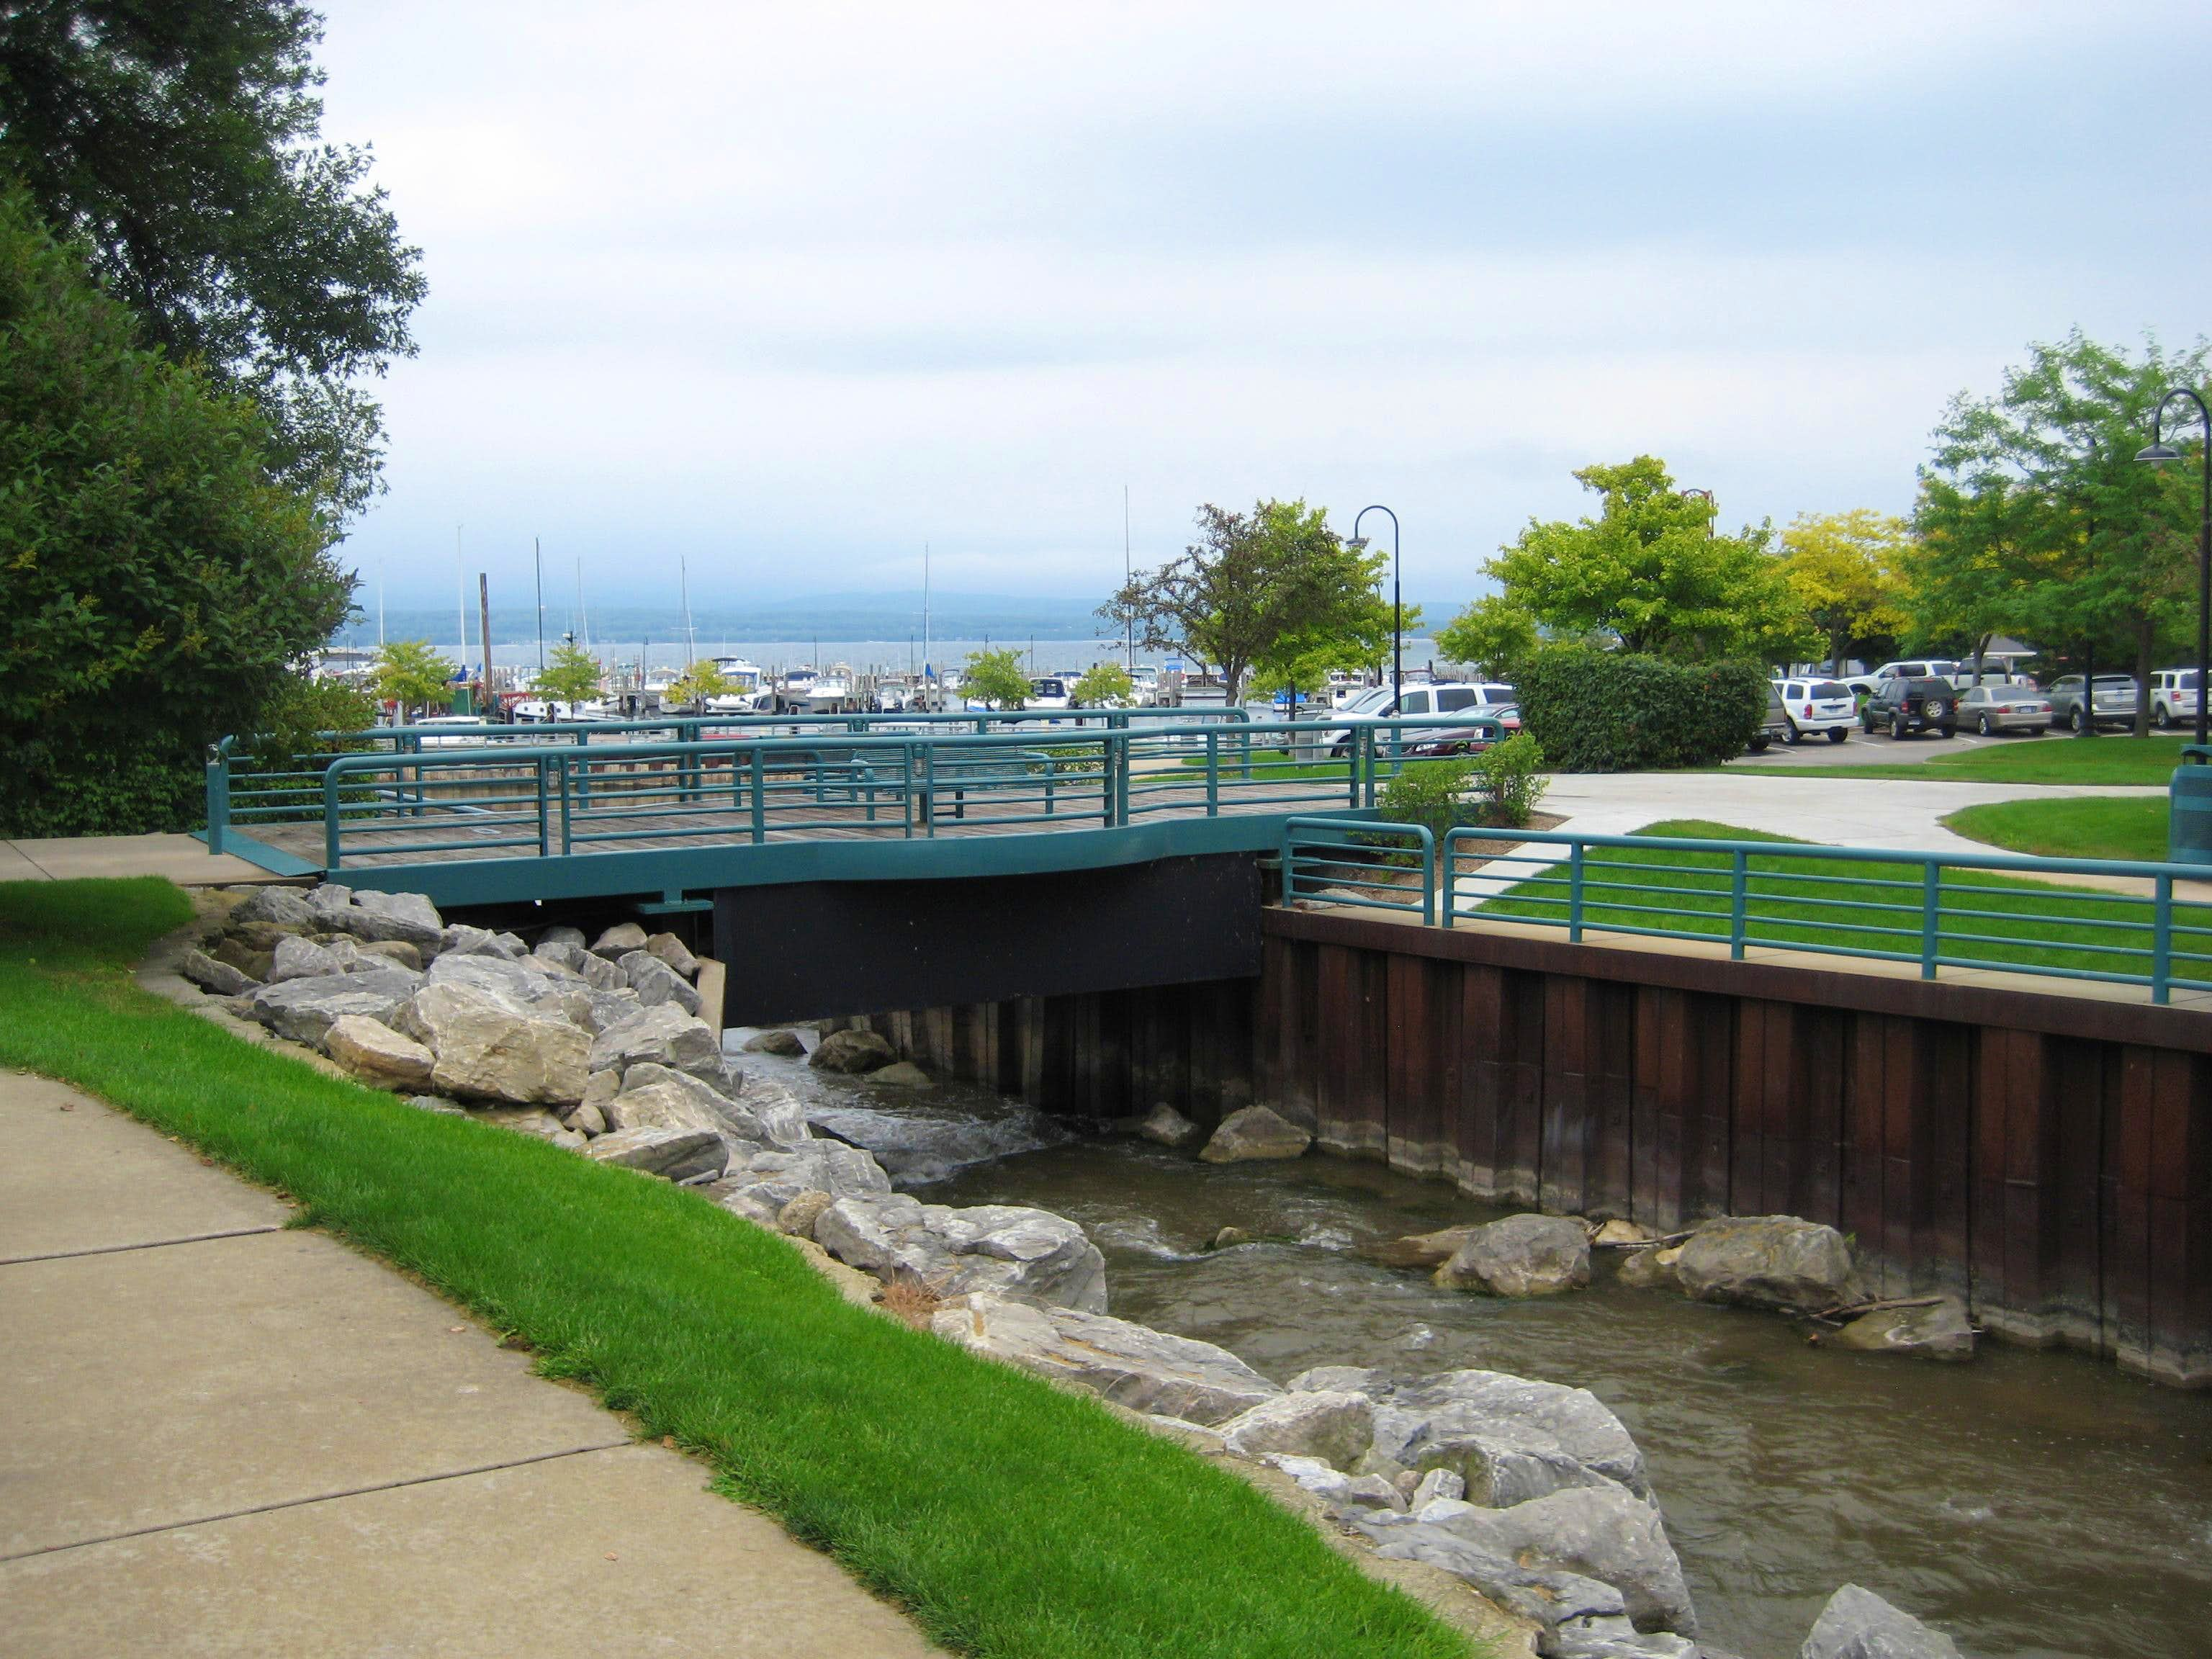 North Country Trail - MI-07: Charlevoix County to the Mackinac Bridge